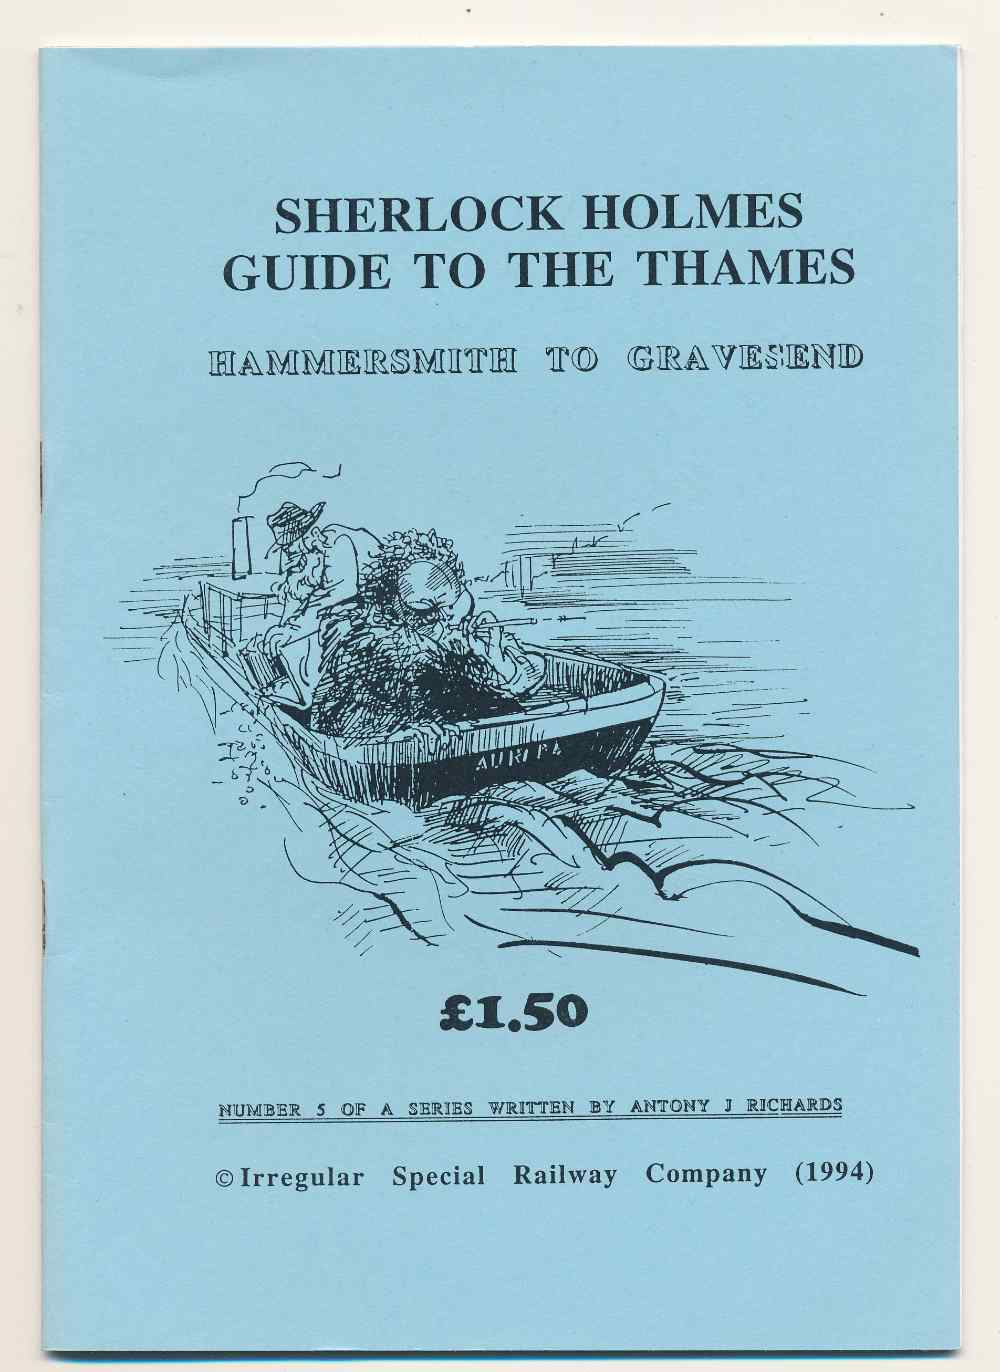 Sherlock Holmes guide to the Thames : Hammersmith to Gravesend.